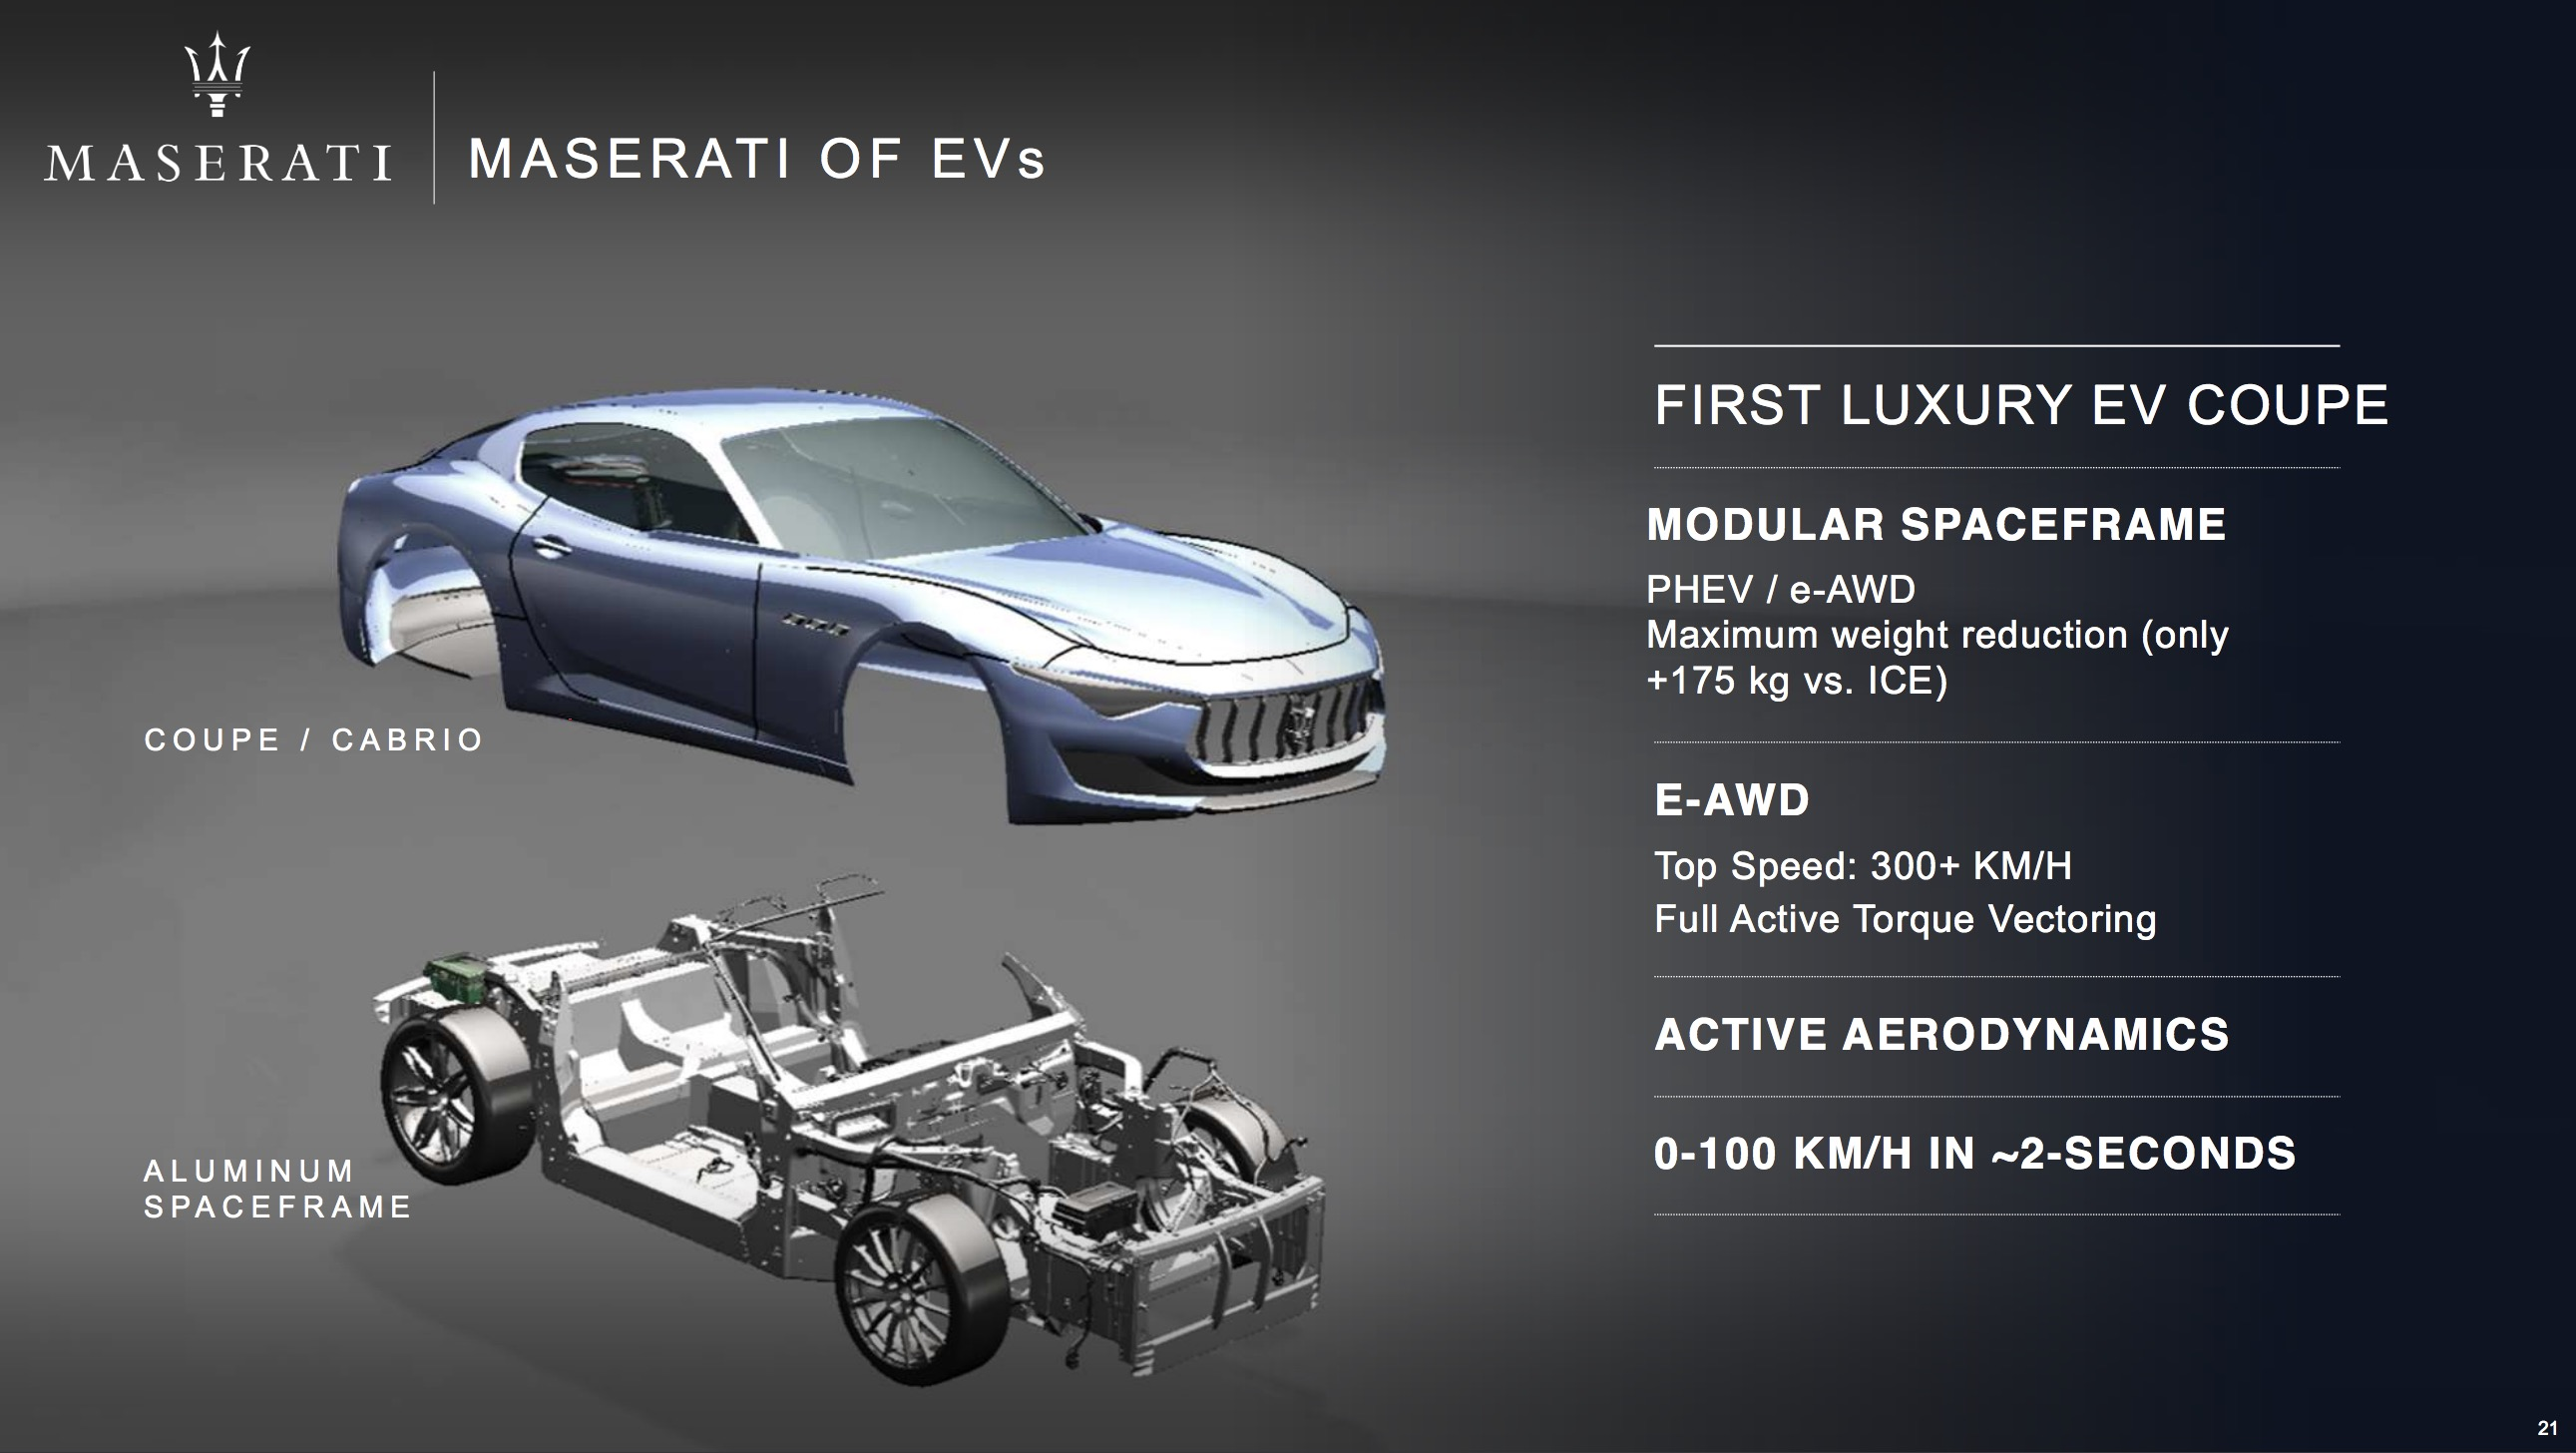 It Will Also Include An All Electric Alfieri Coupe The Company Released Those Images In Its Presentation